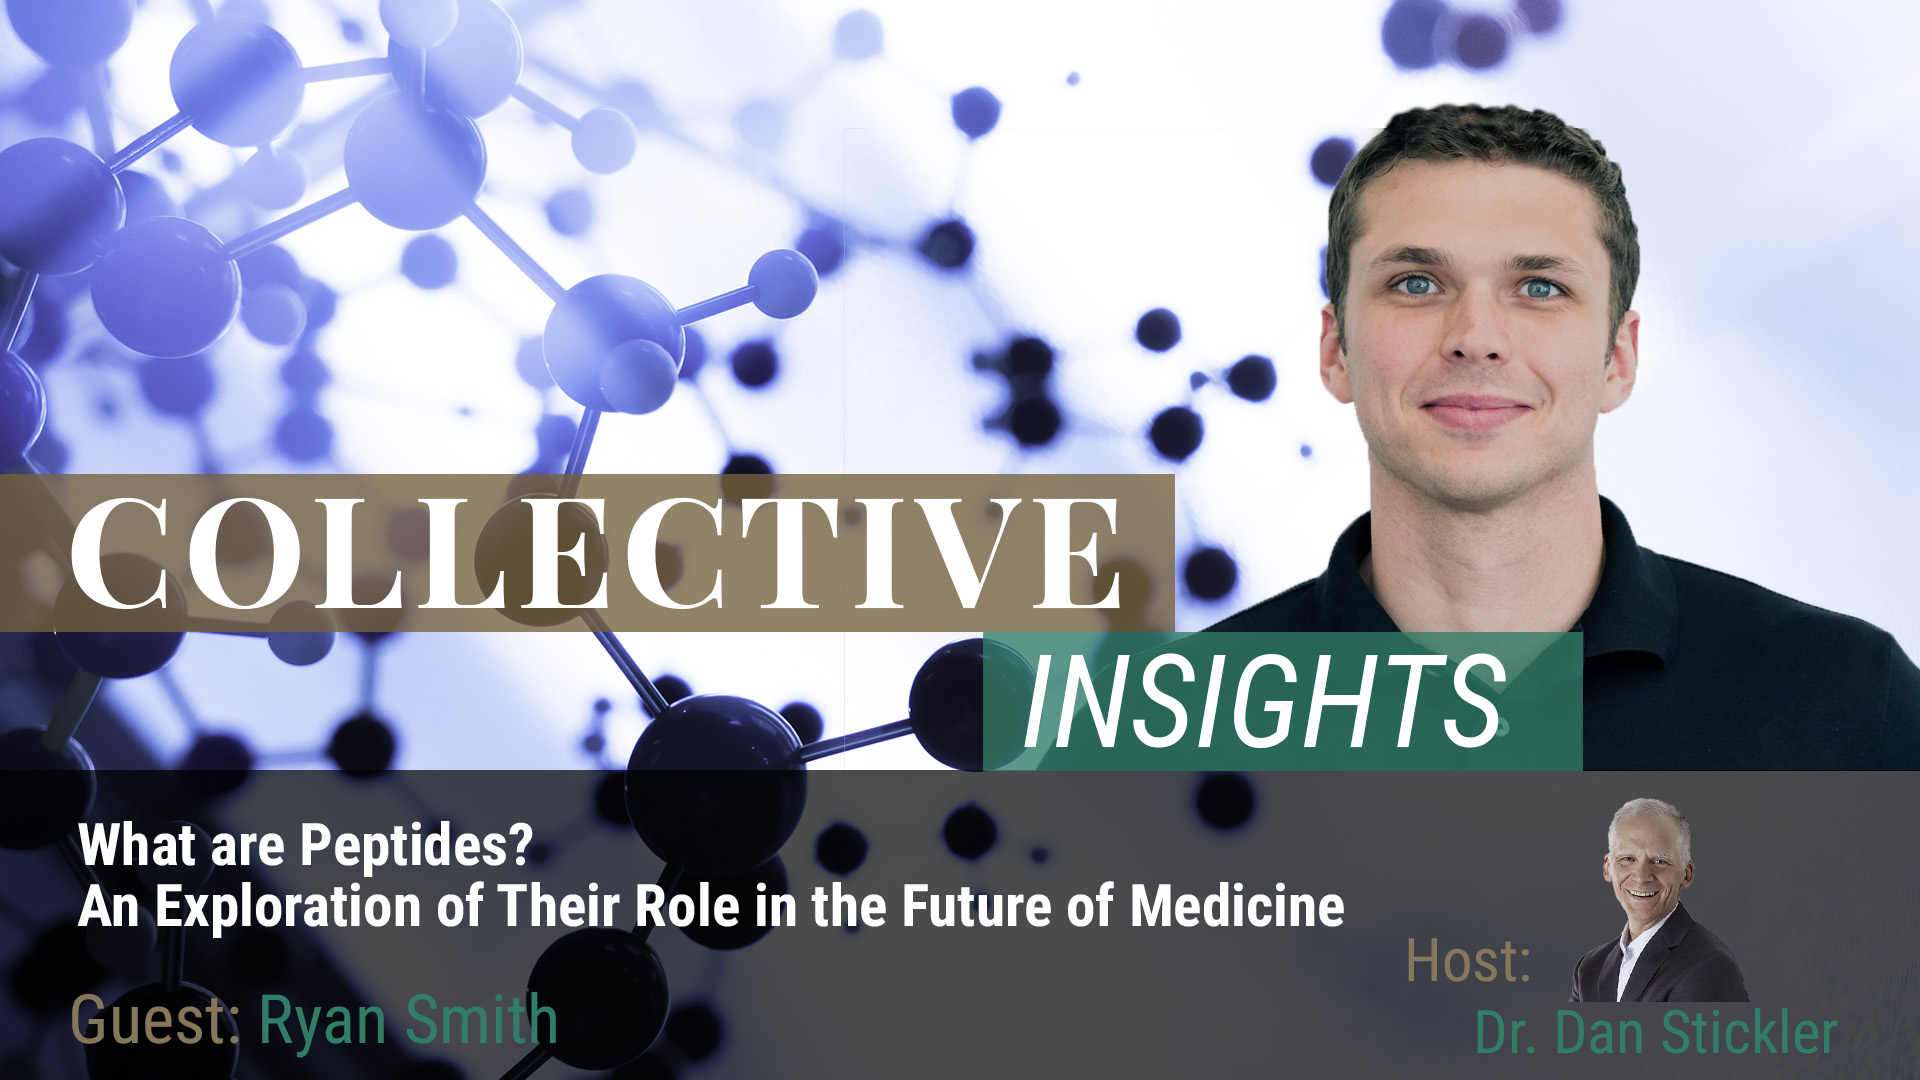 What are Peptides? An Exploration of Their Role in the Future of Medicine